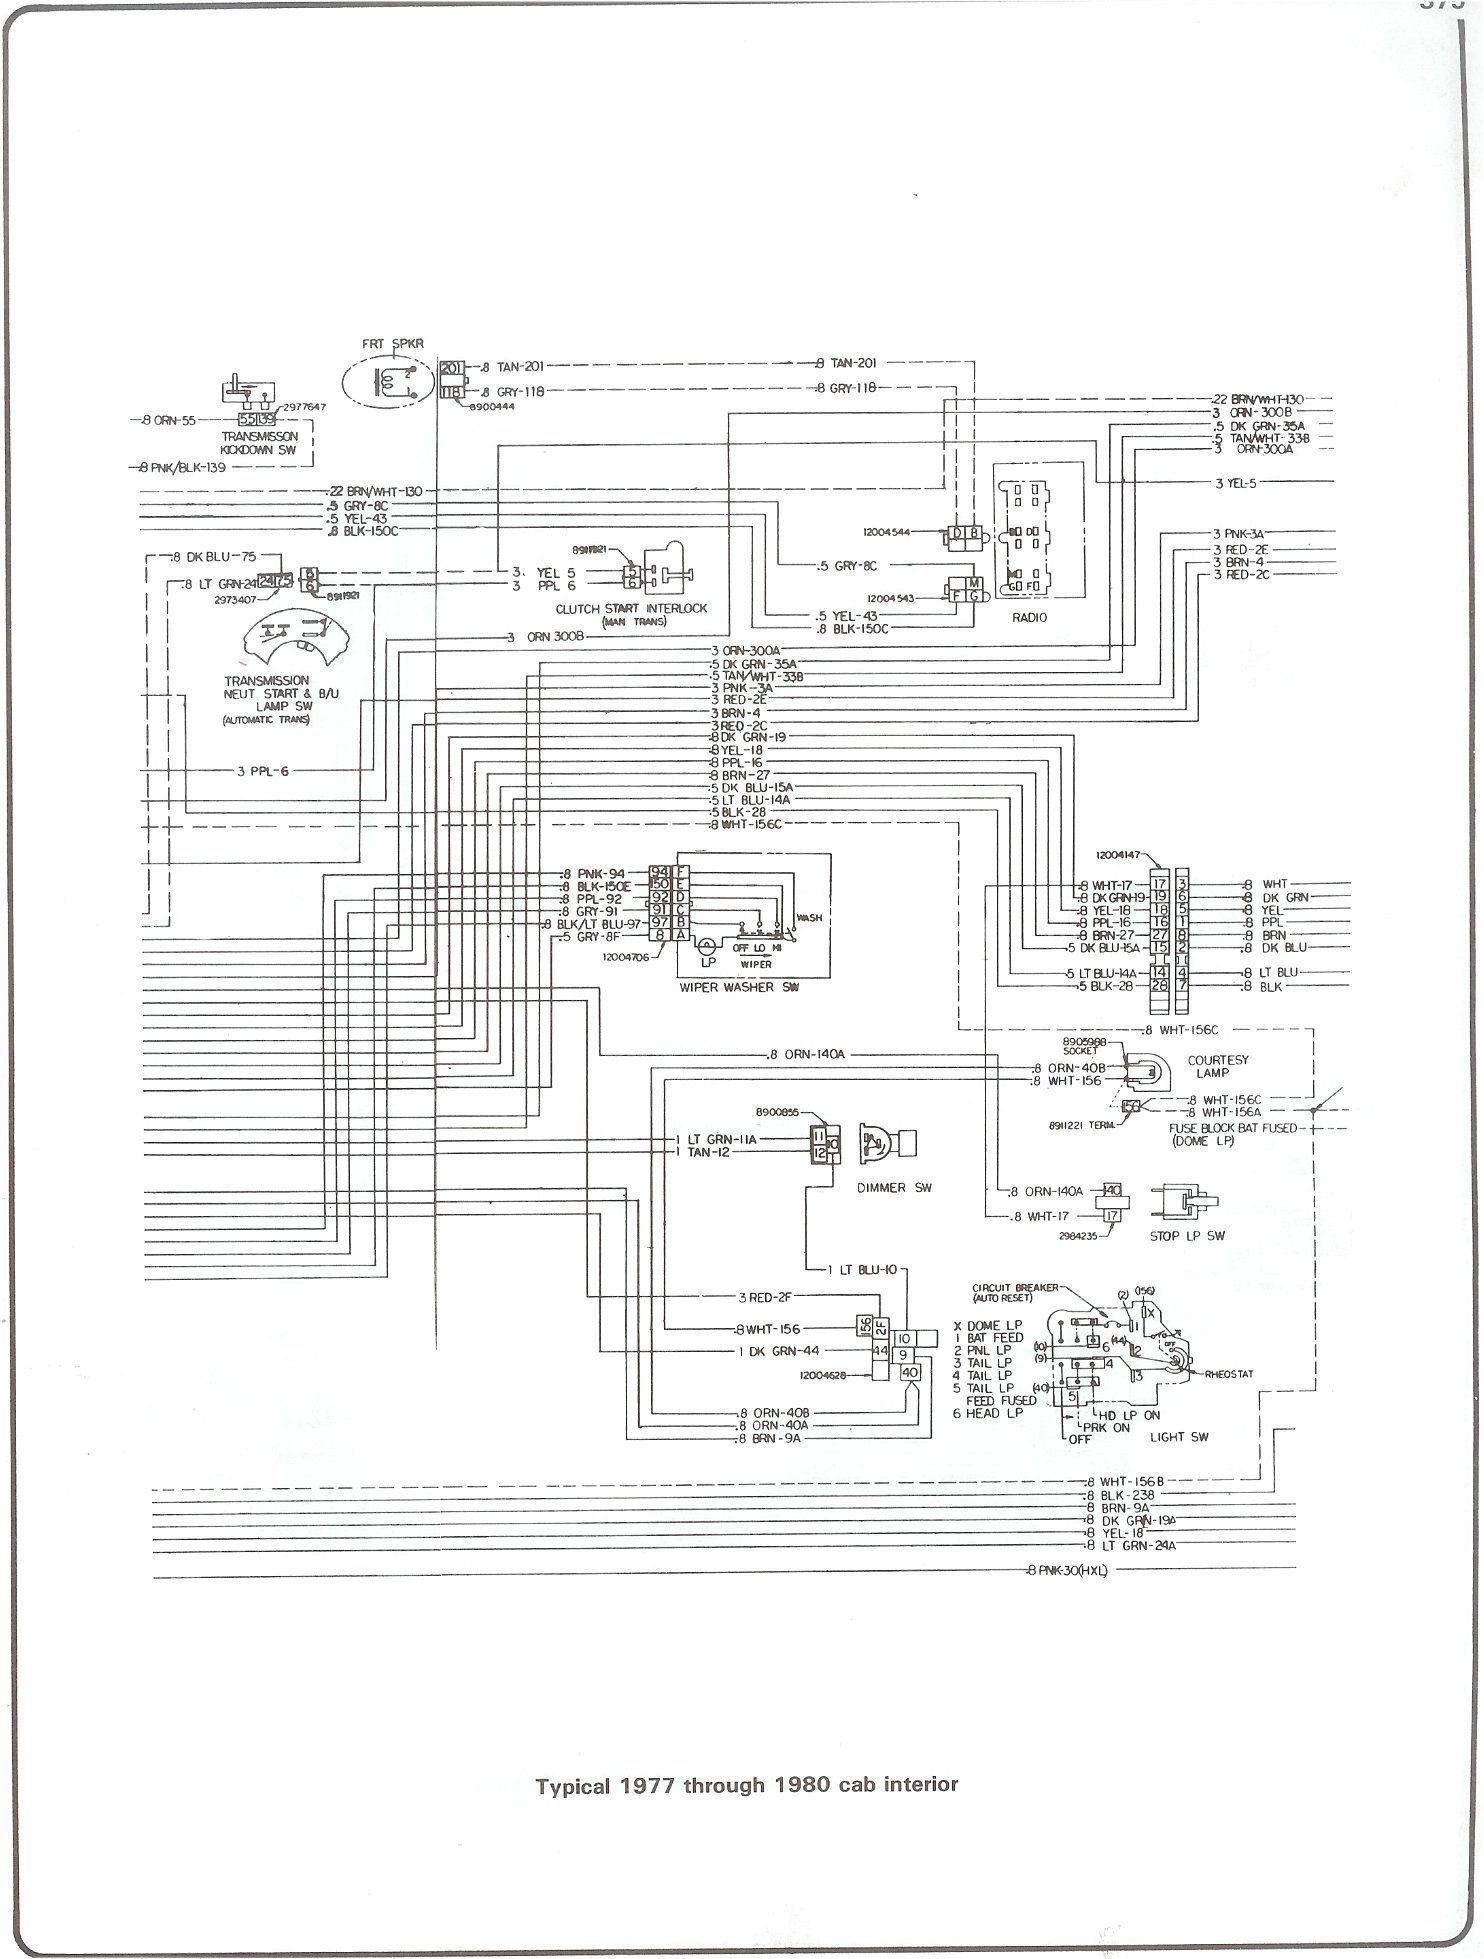 73 87 Chevy Wiring Harness | Wiring Diagram  Wiring Diagram - AutoScout24